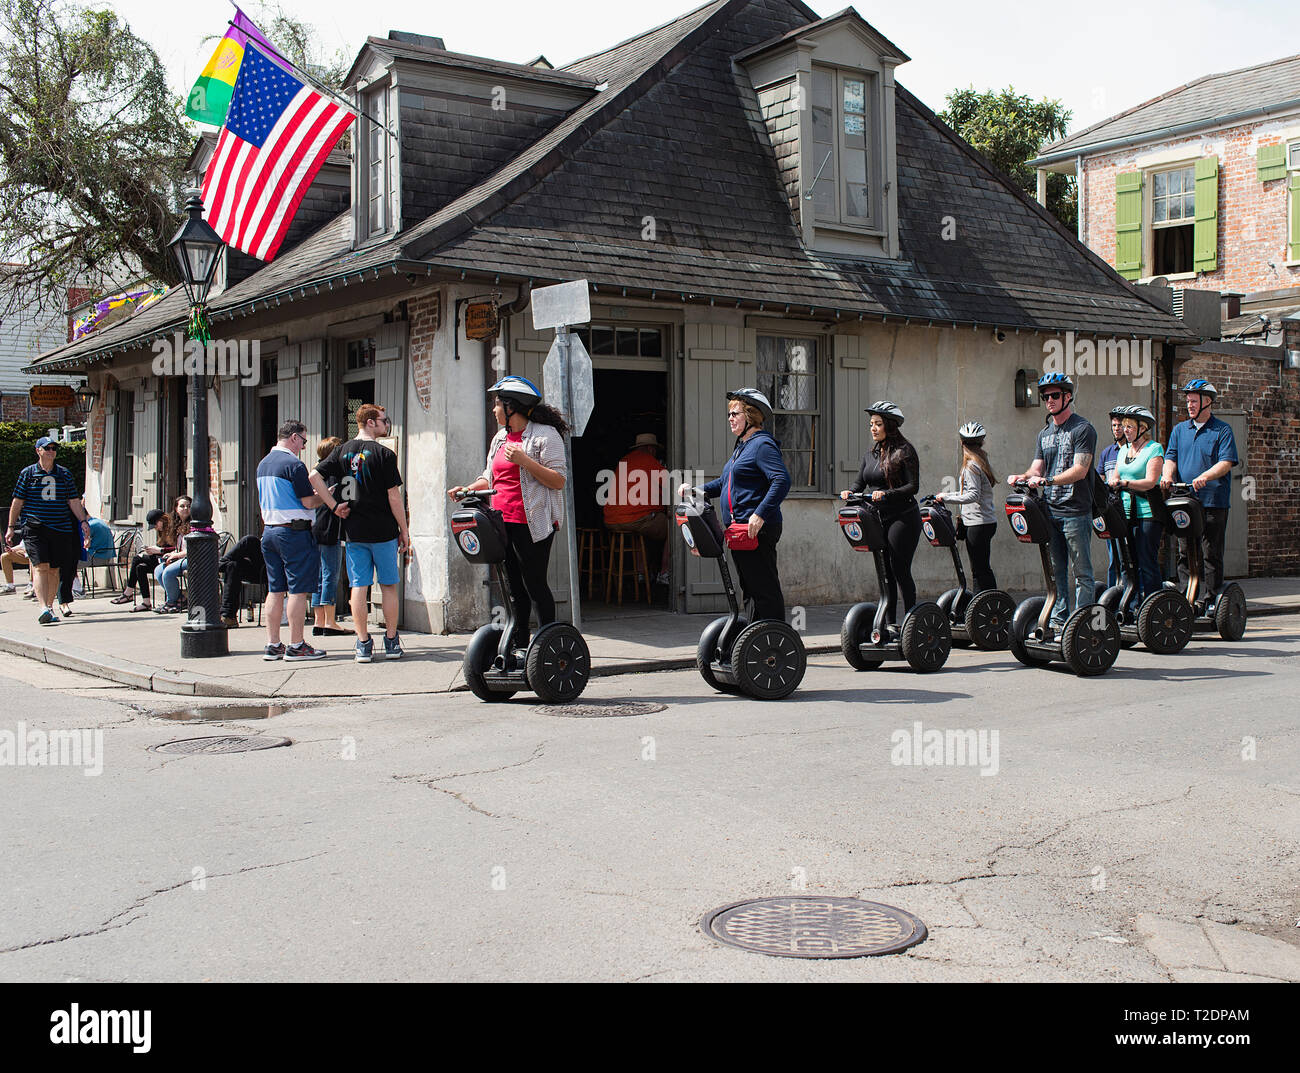 A Segway tour happening in front of Lafitte's Blacksmith Shop Bar, New Orleans, Louisiana. - Stock Image